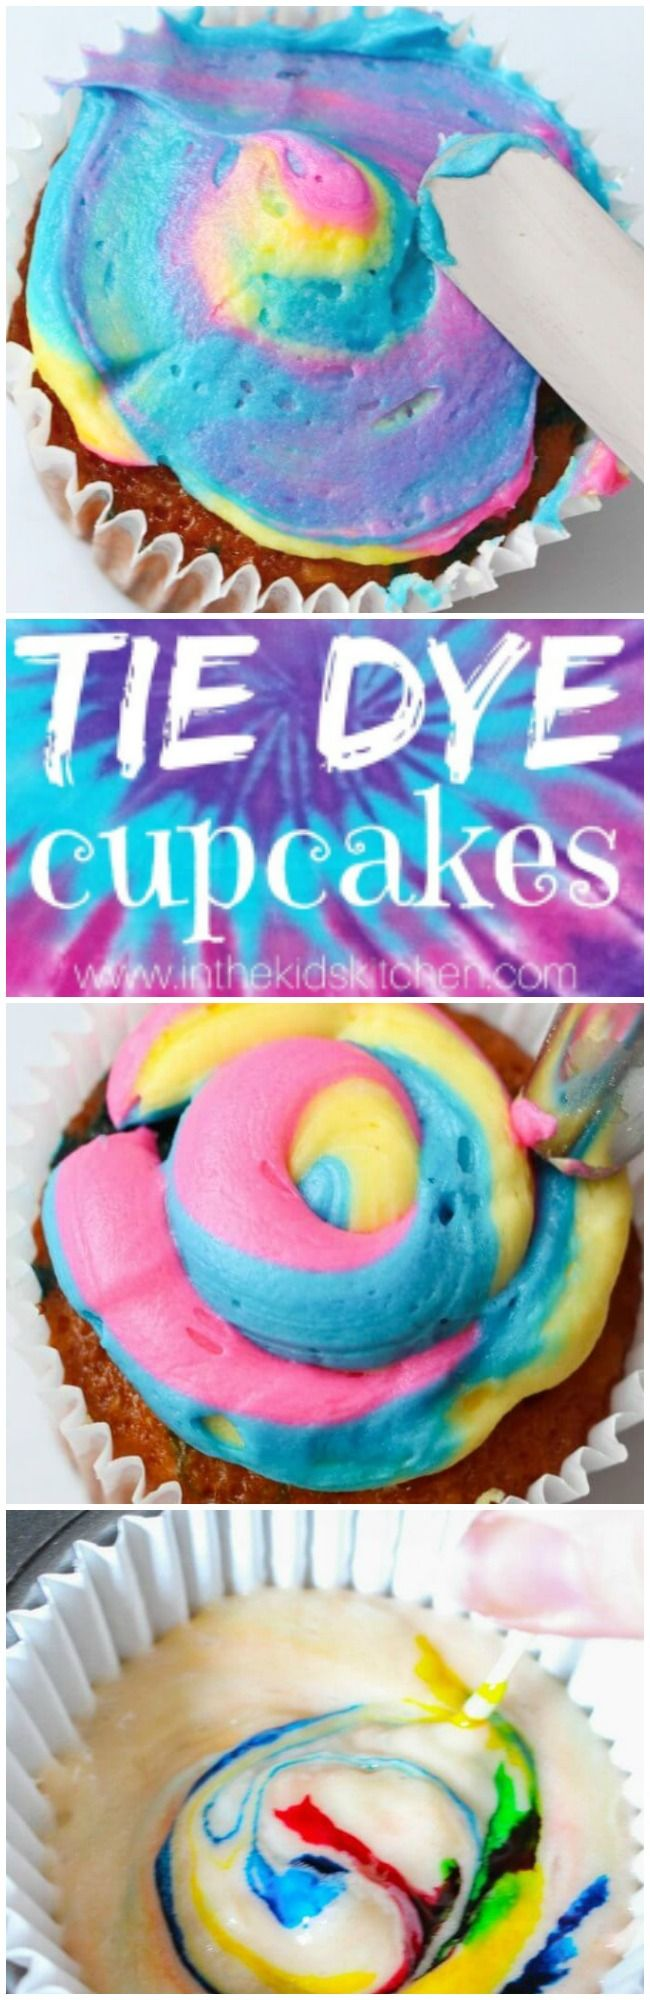 These vibrant Tie Dye Cupcakes are perfect for a summer barbecue or kids birthday party. And you won't believe how easy they are to make!